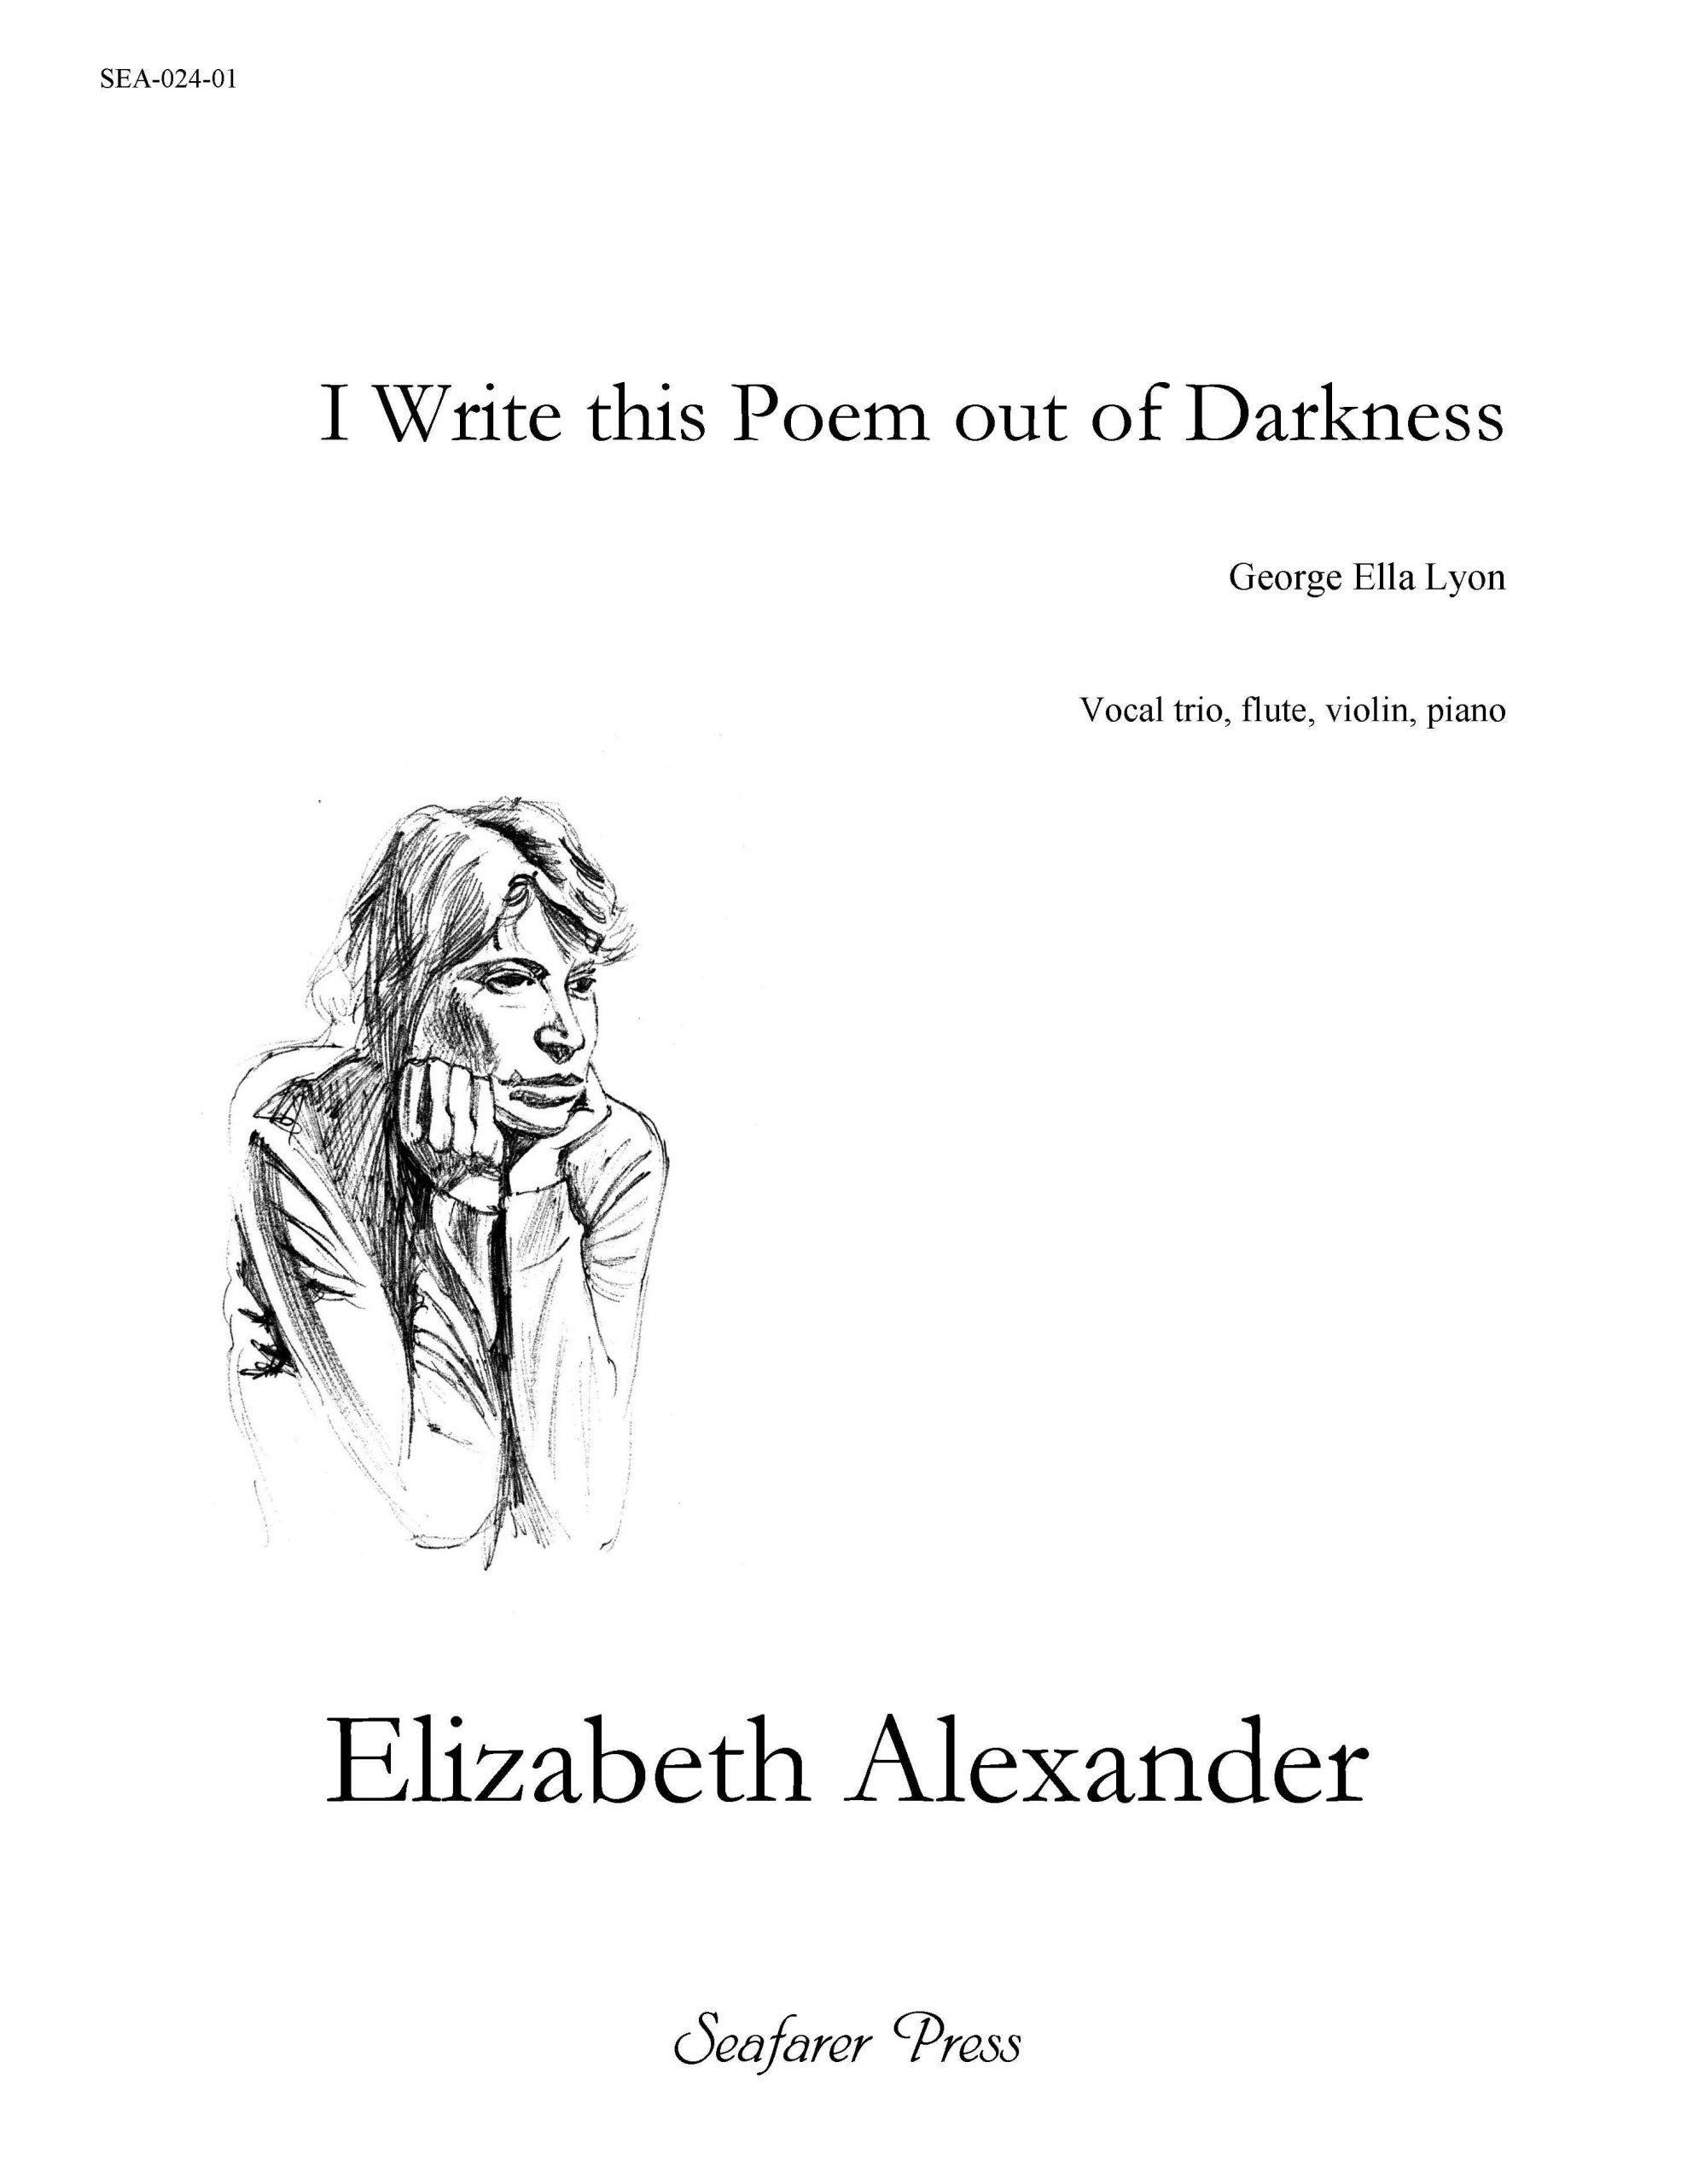 SEA-024-01 - I Write This Poem Out Of Darkness